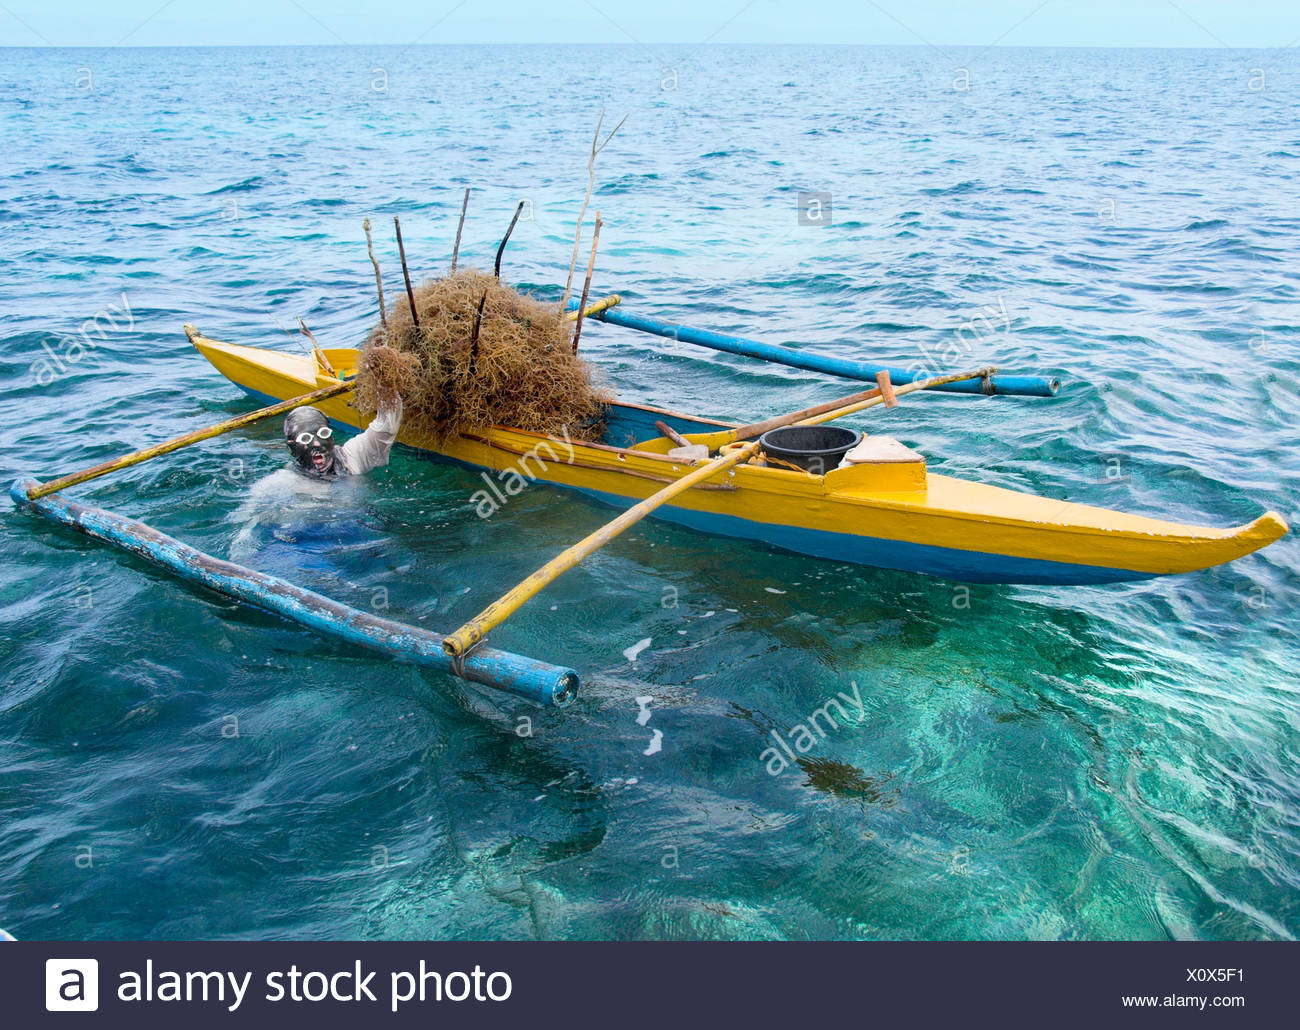 Philippine diver harvesting seaweed, Philippines, Pacific Ocean, Southeast Asia Stock Photo